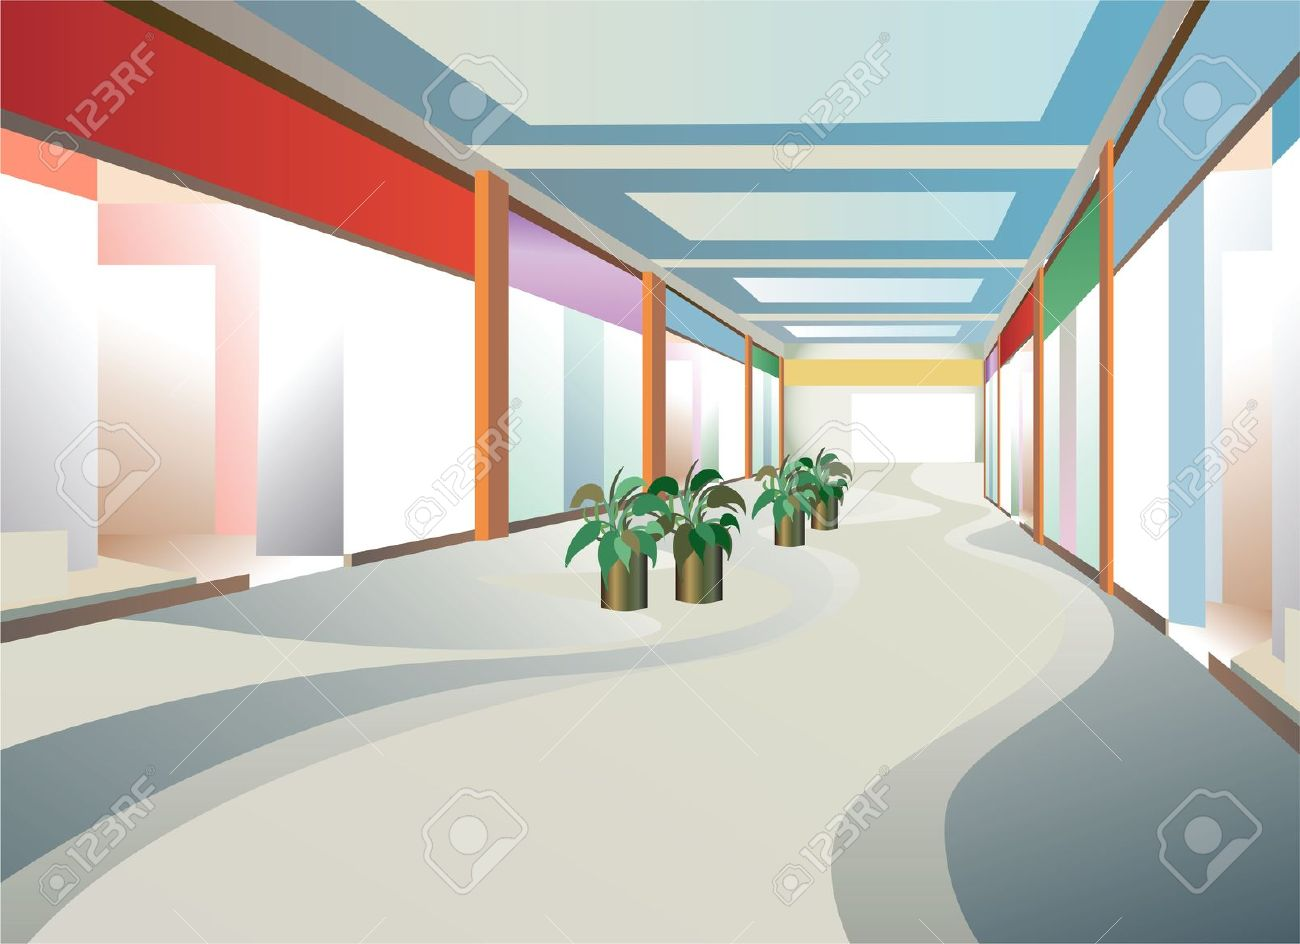 Corridor In Mall With Windows, Vector Royalty Free Cliparts.